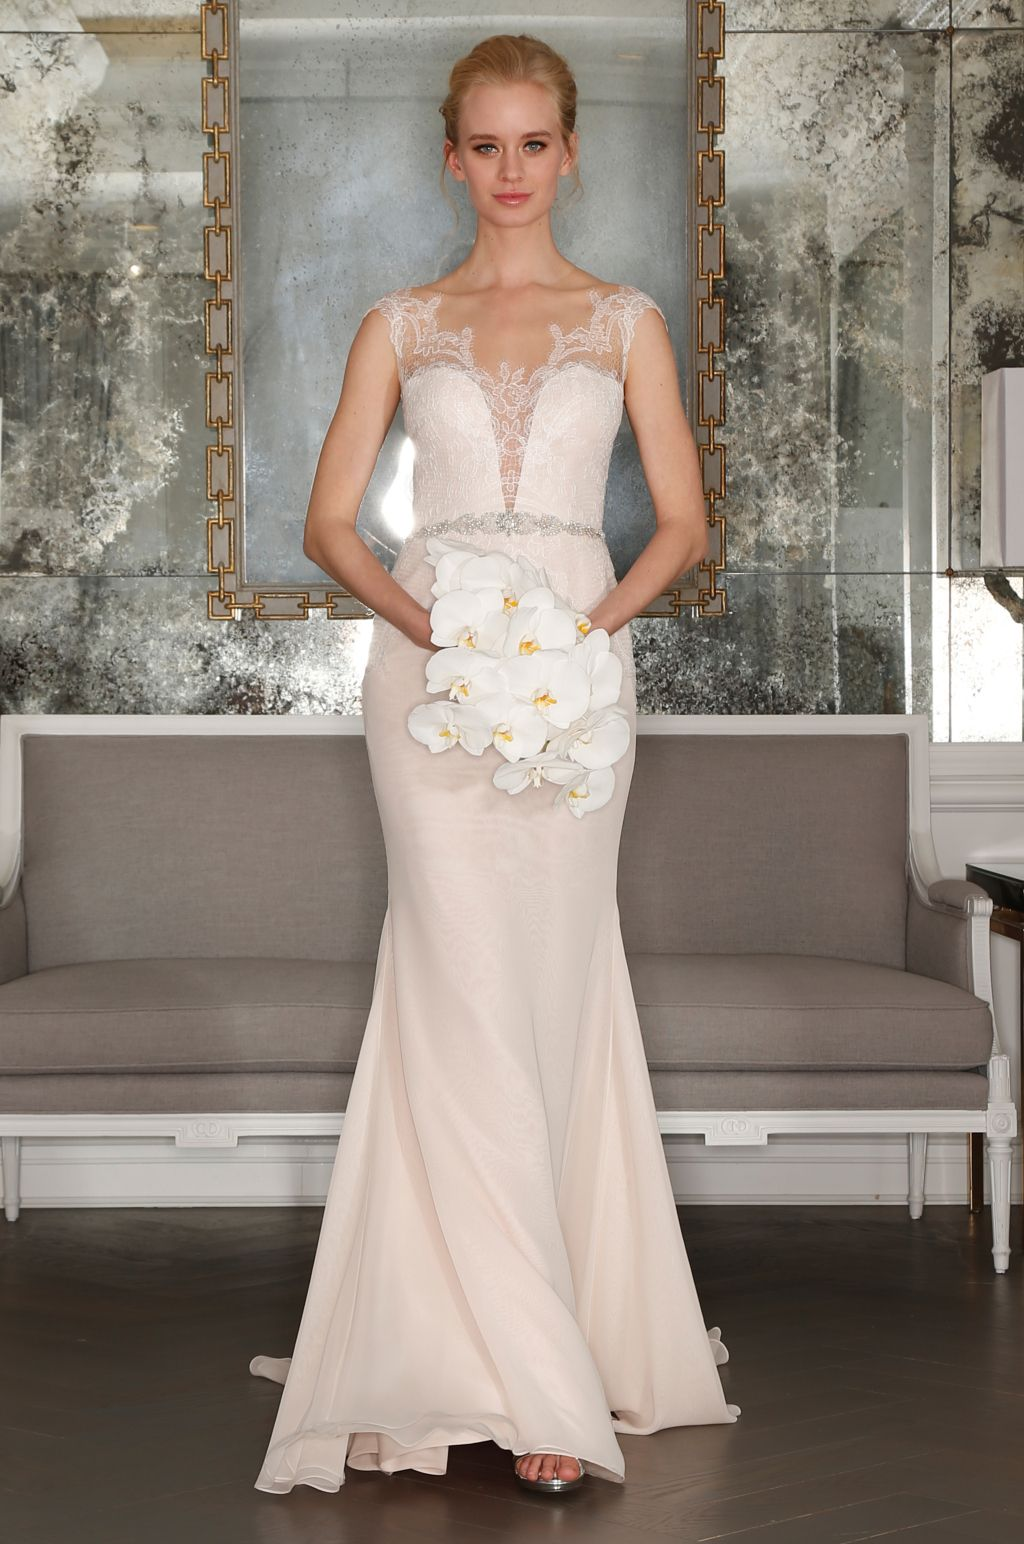 Different color wedding dresses  Romona Keveza Spring Bridal   Romona keveza Wedding dress and